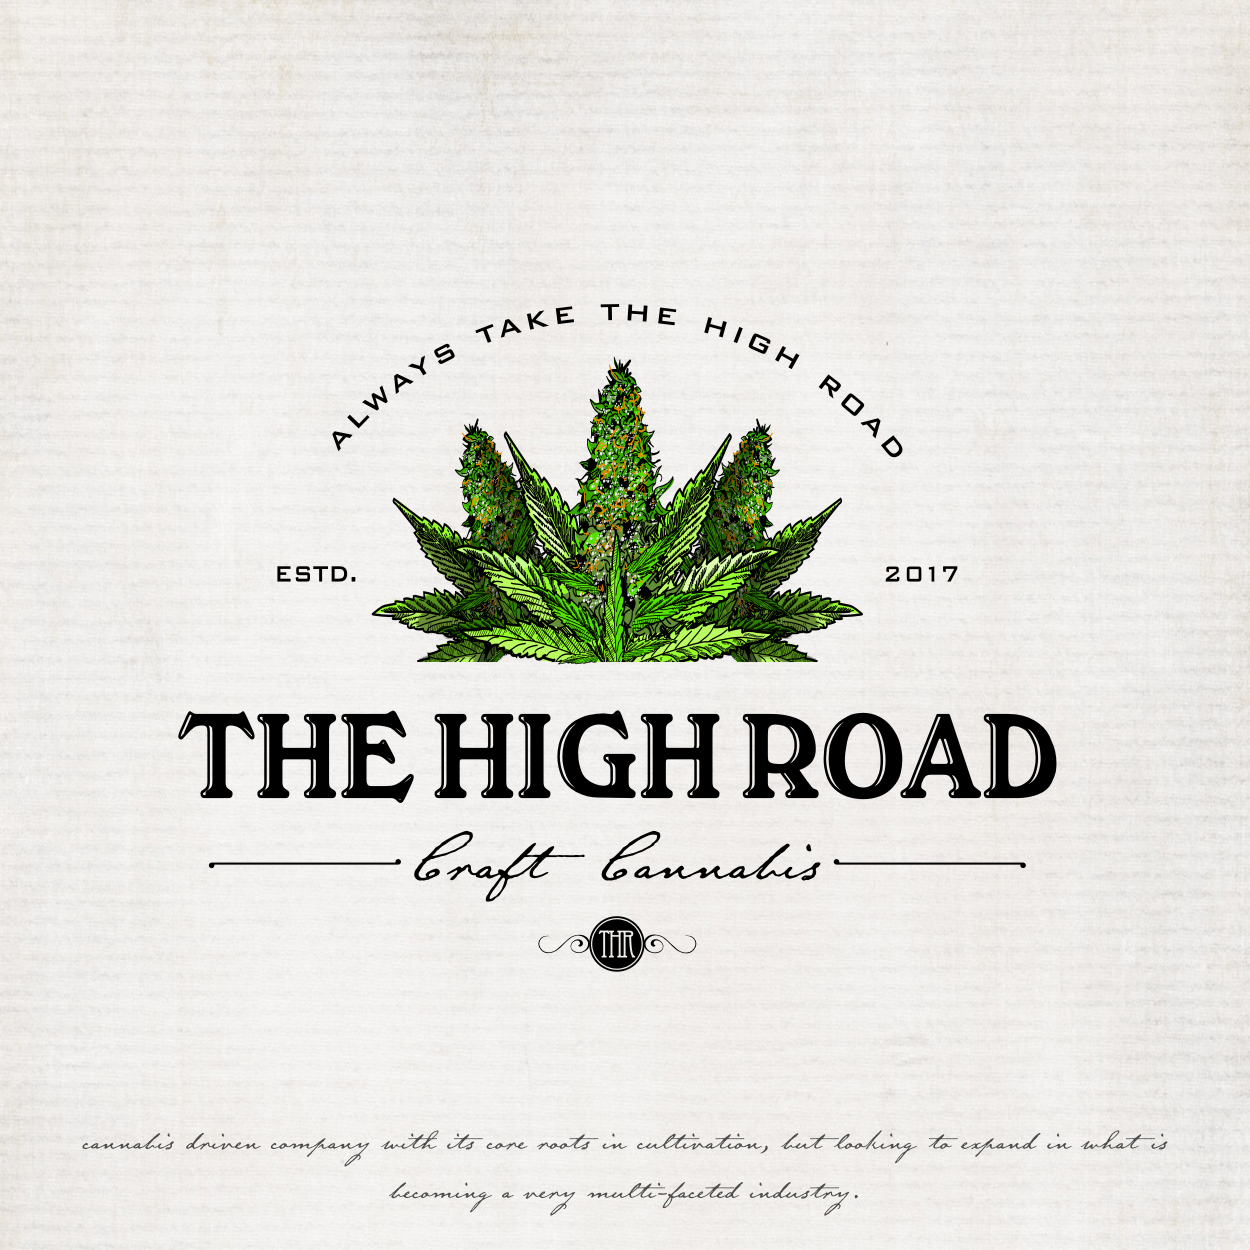 Cannabis logo design for The High Road